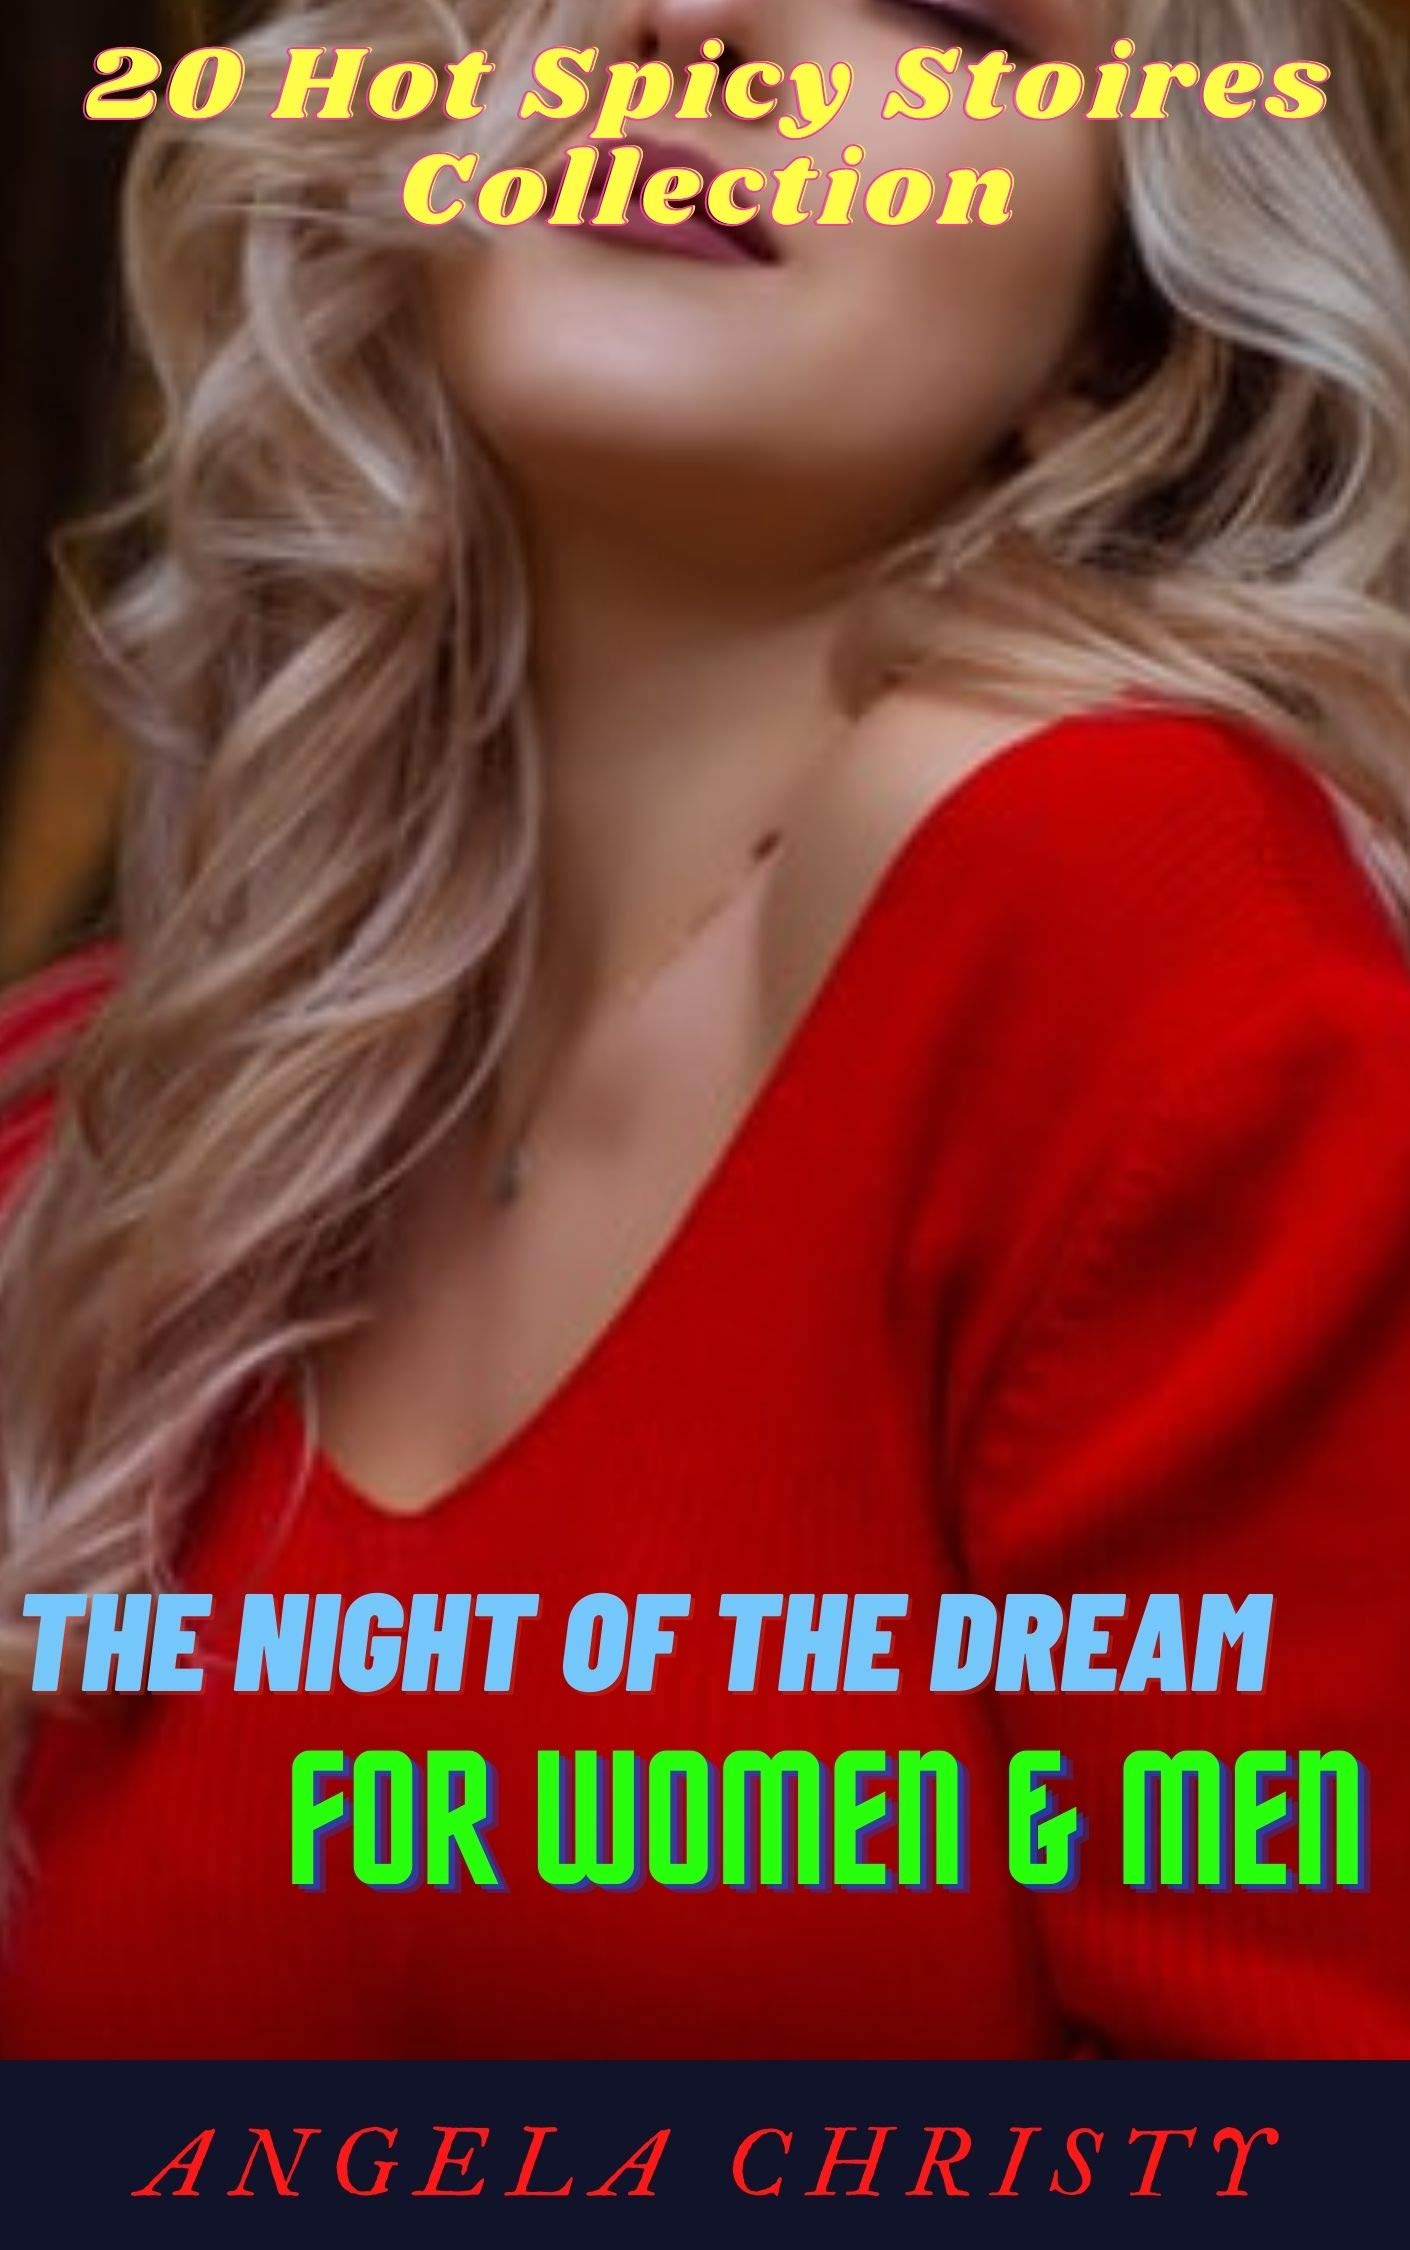 THE NIGHT OF THE DREAM FOR WOMEN & MEN: 20 Hot Spicy Stories Collection,[DREAM FOR WOMEN & MEN ],EROTIC SEX SCENES With Dirty Talk, Extremely Naughty Erotica Books.